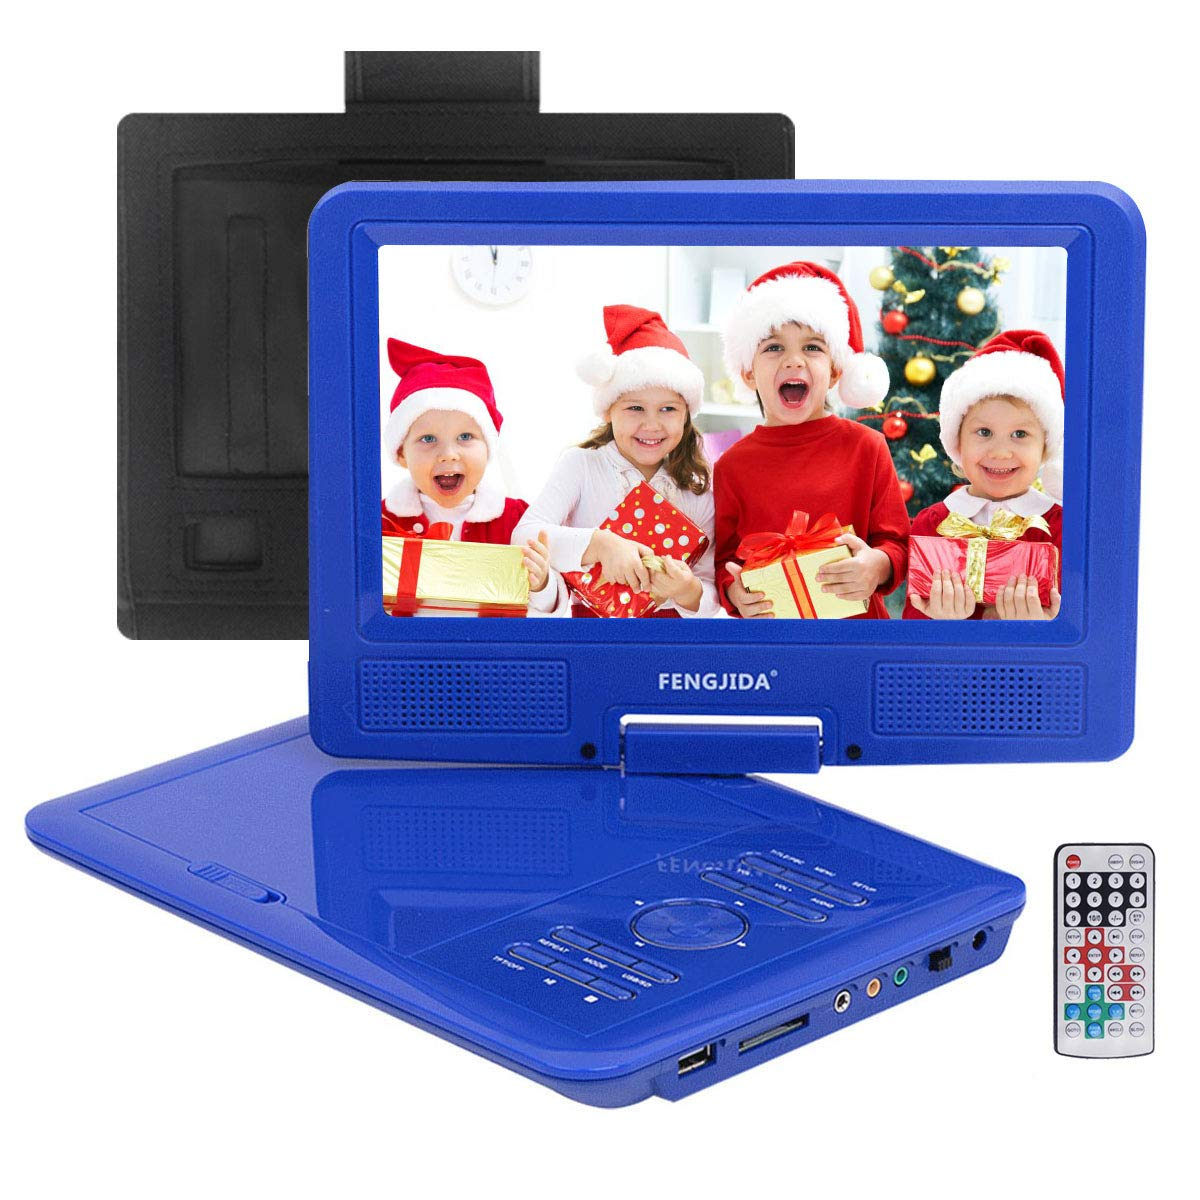 FENGJIDA 9.5'' Portable DVD Player, Car DVD Player with Headrest Mount, Swivel Screen, Built-in Rechargeable Battery, Remote Control, 5.9 ft Car Charger SD Card Slot and USB Port- Blue by FENGJIDA